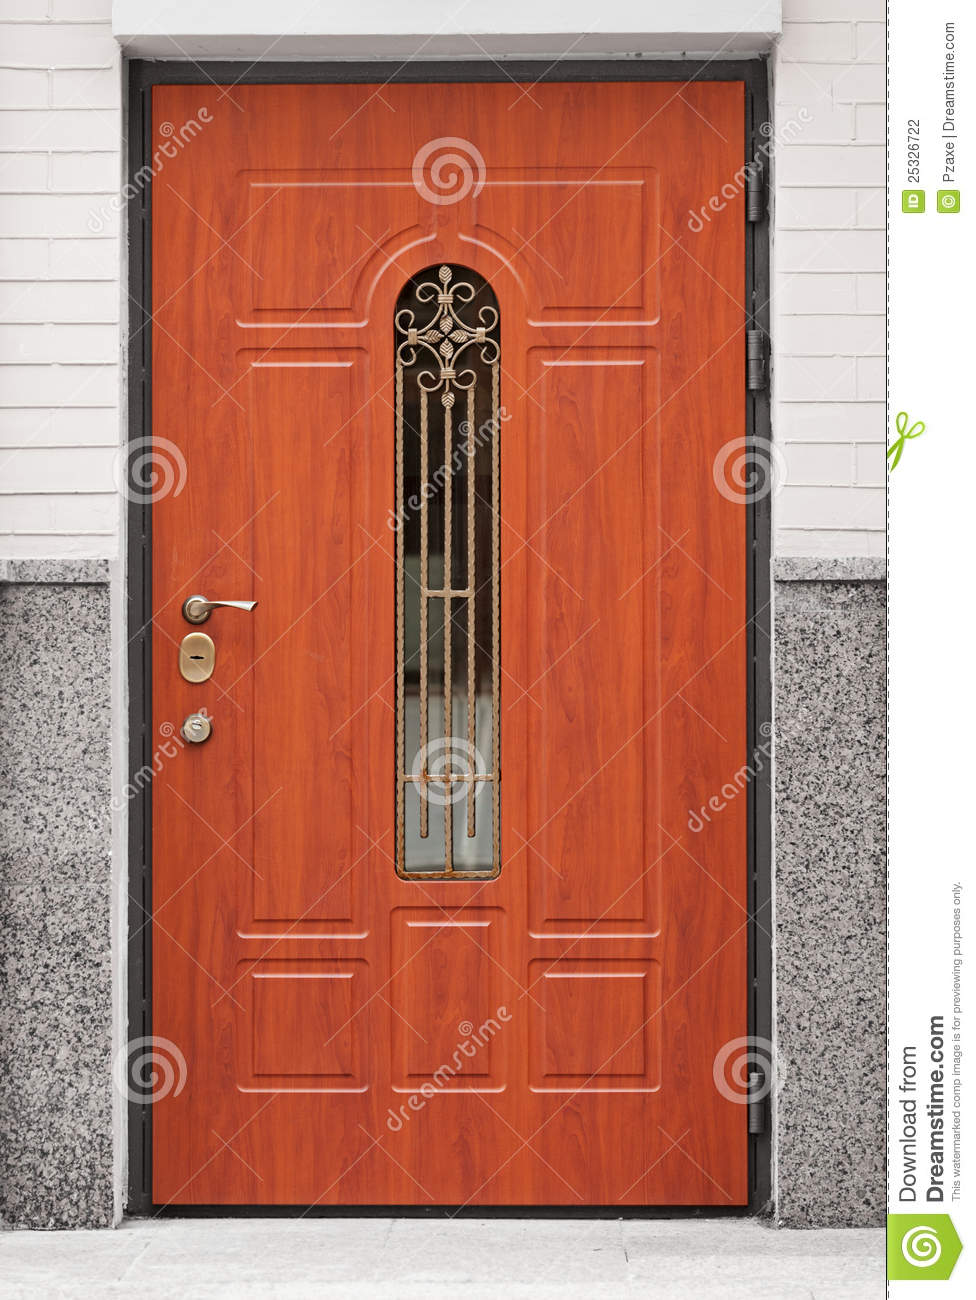 brown front door entrance to the building stock photography